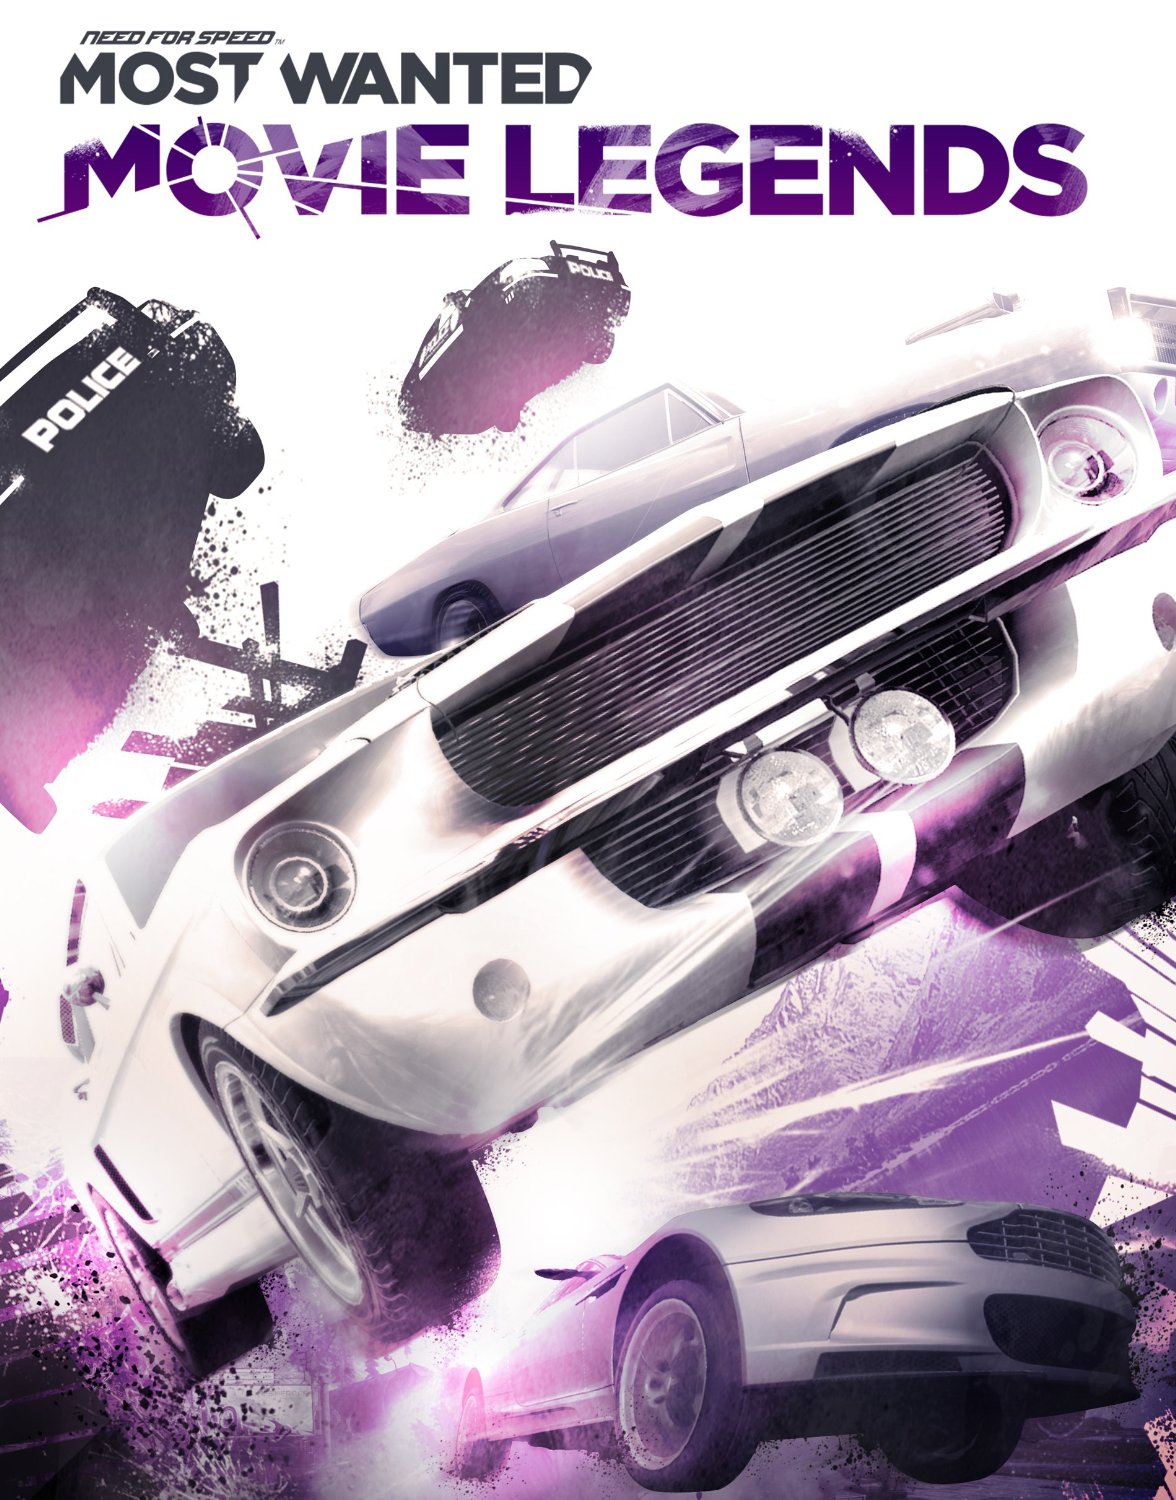 Need for Speed: Most Wanted (2012)/Movie Legends Pack